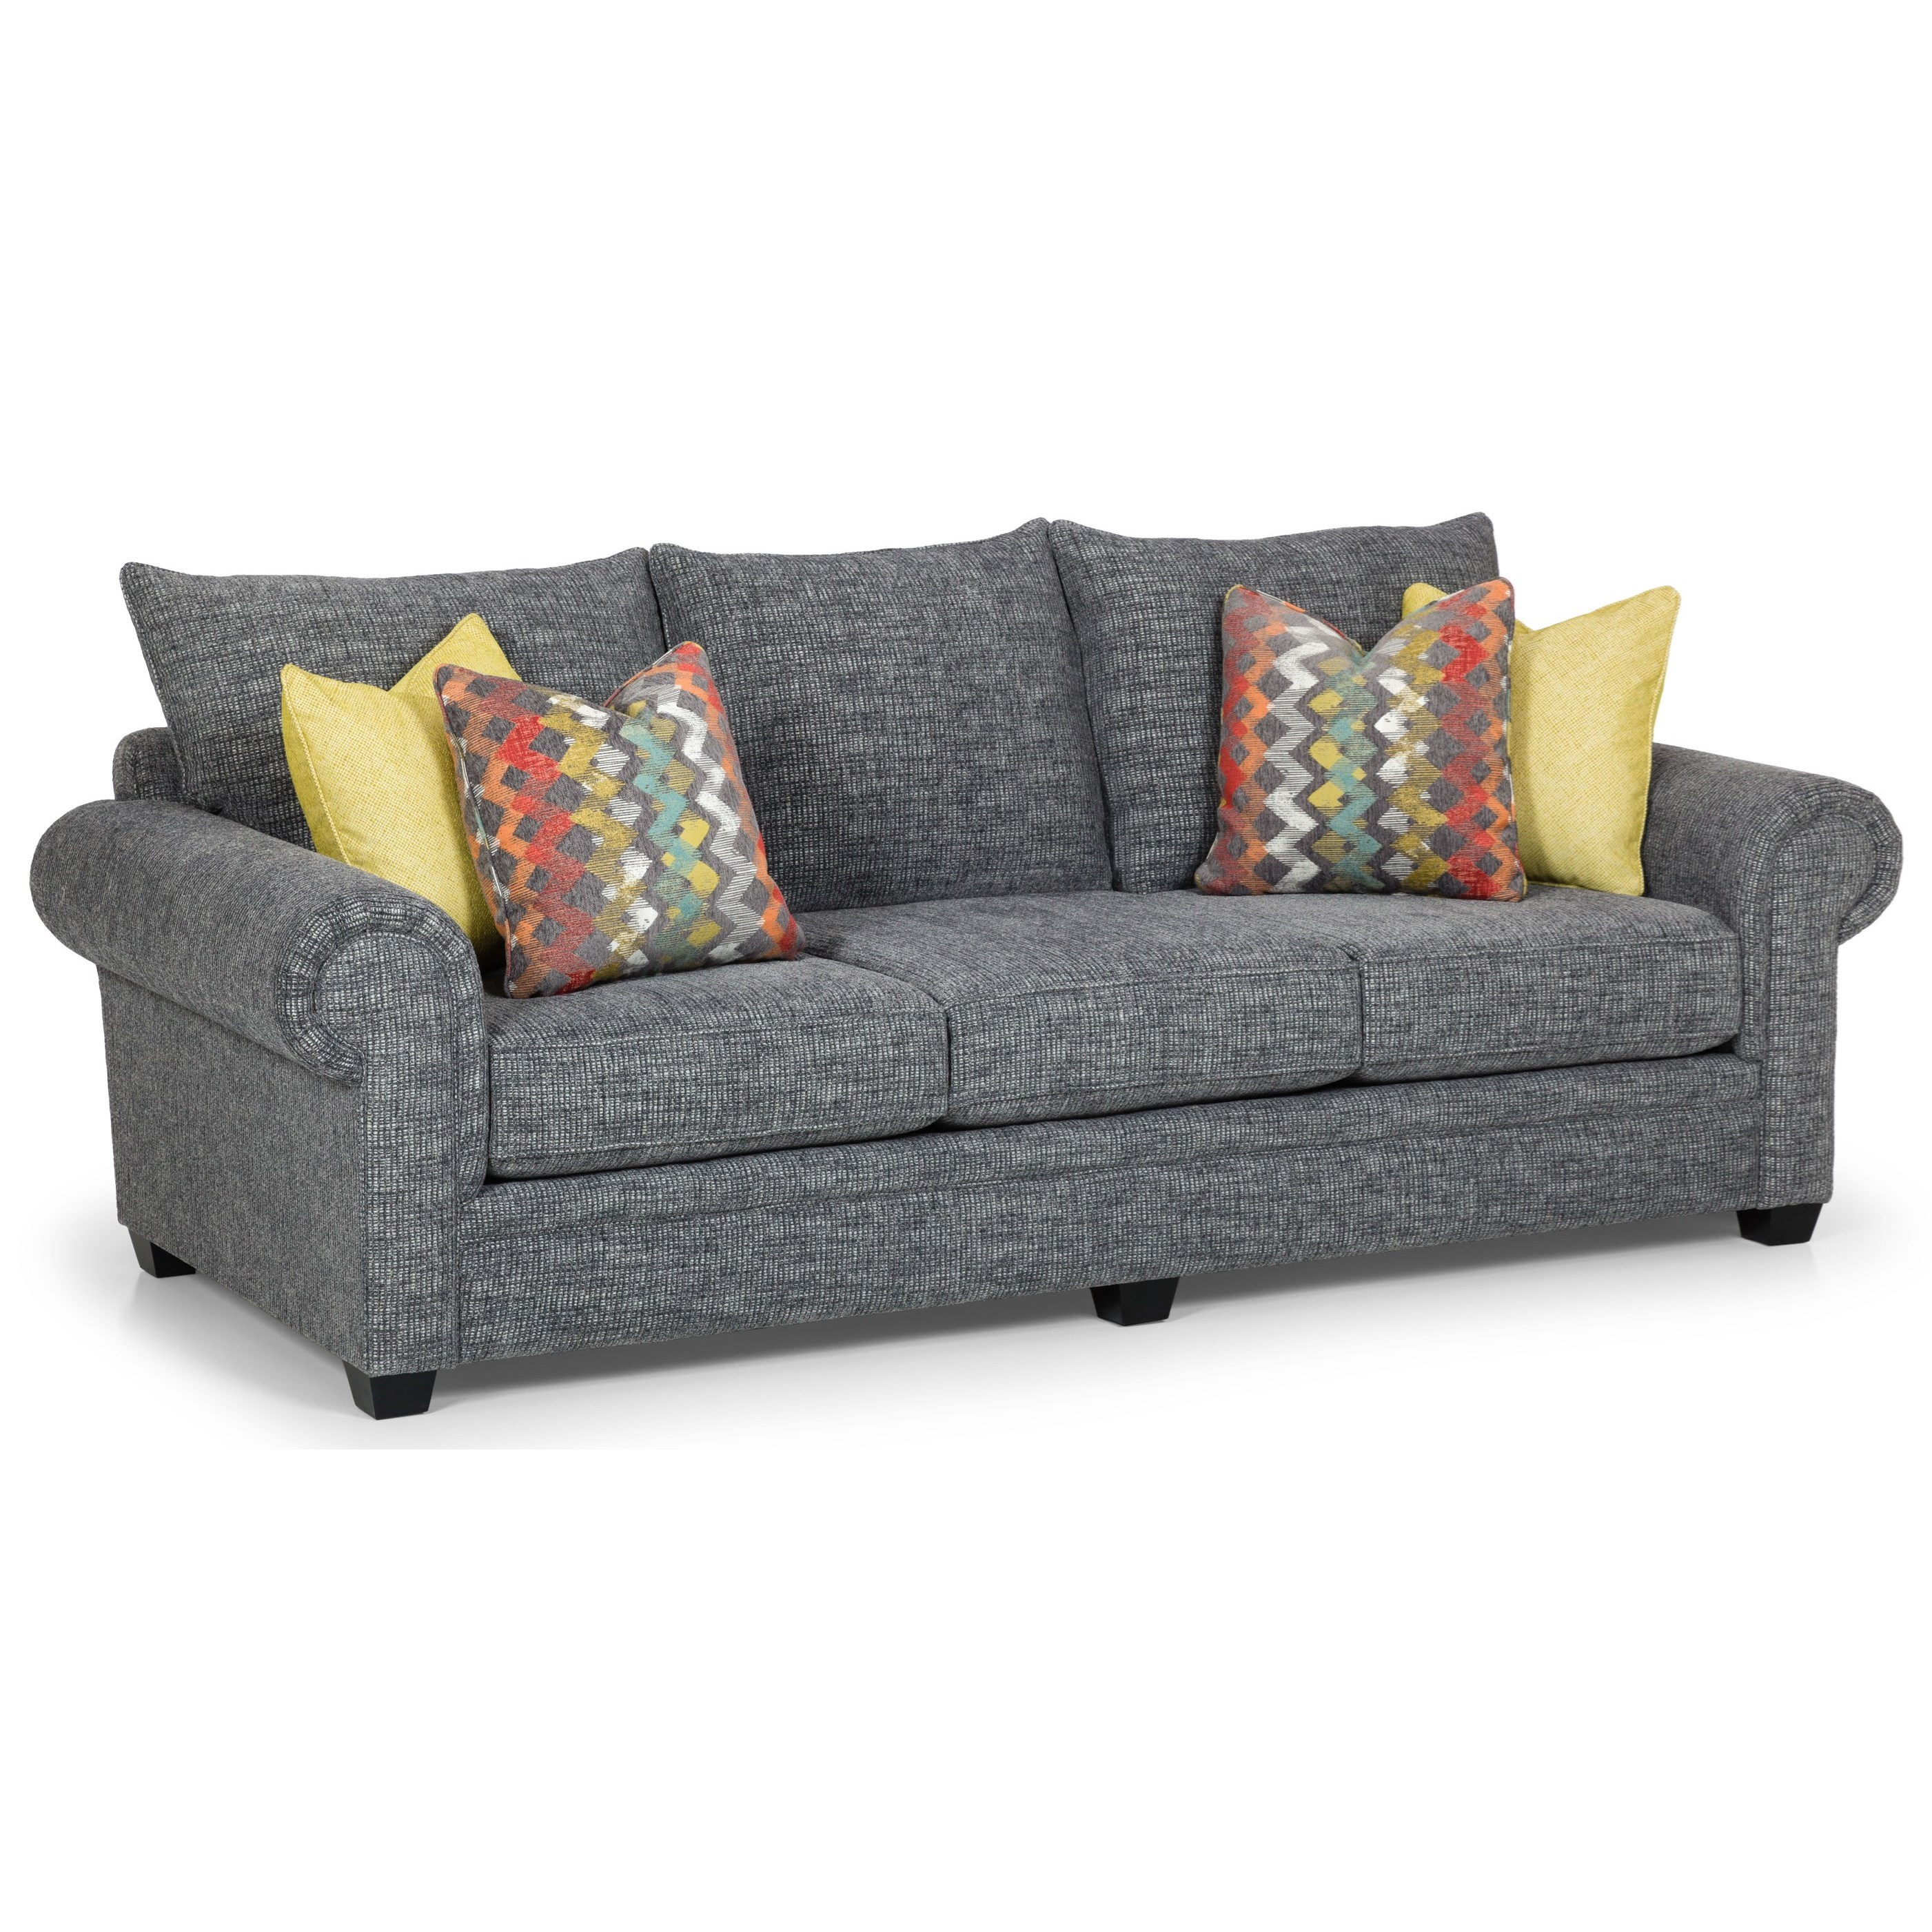 443 Sofa by Stanton at Wilson's Furniture